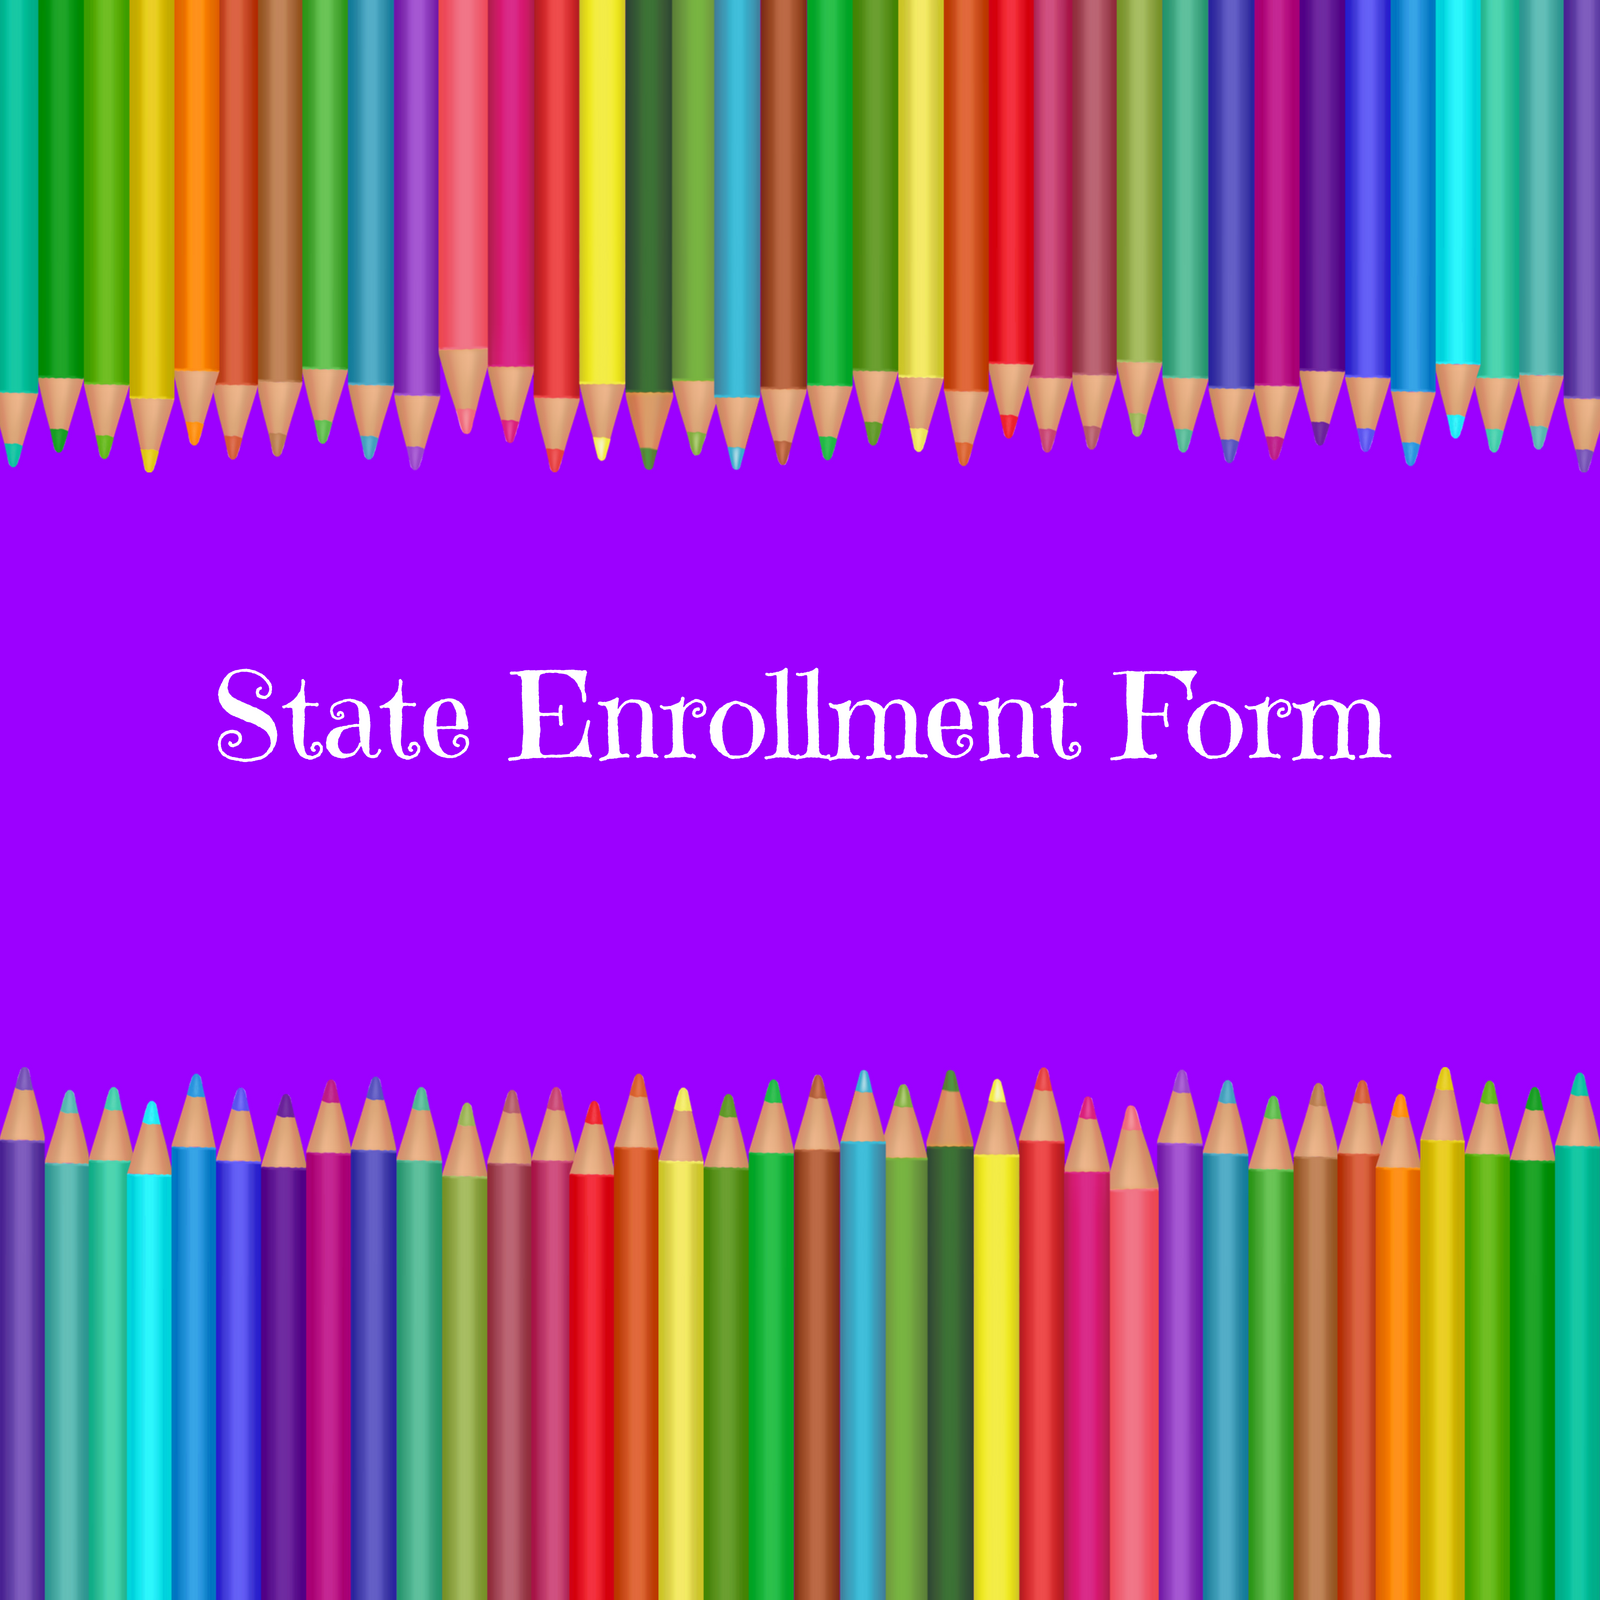 State Enrollment Form.png